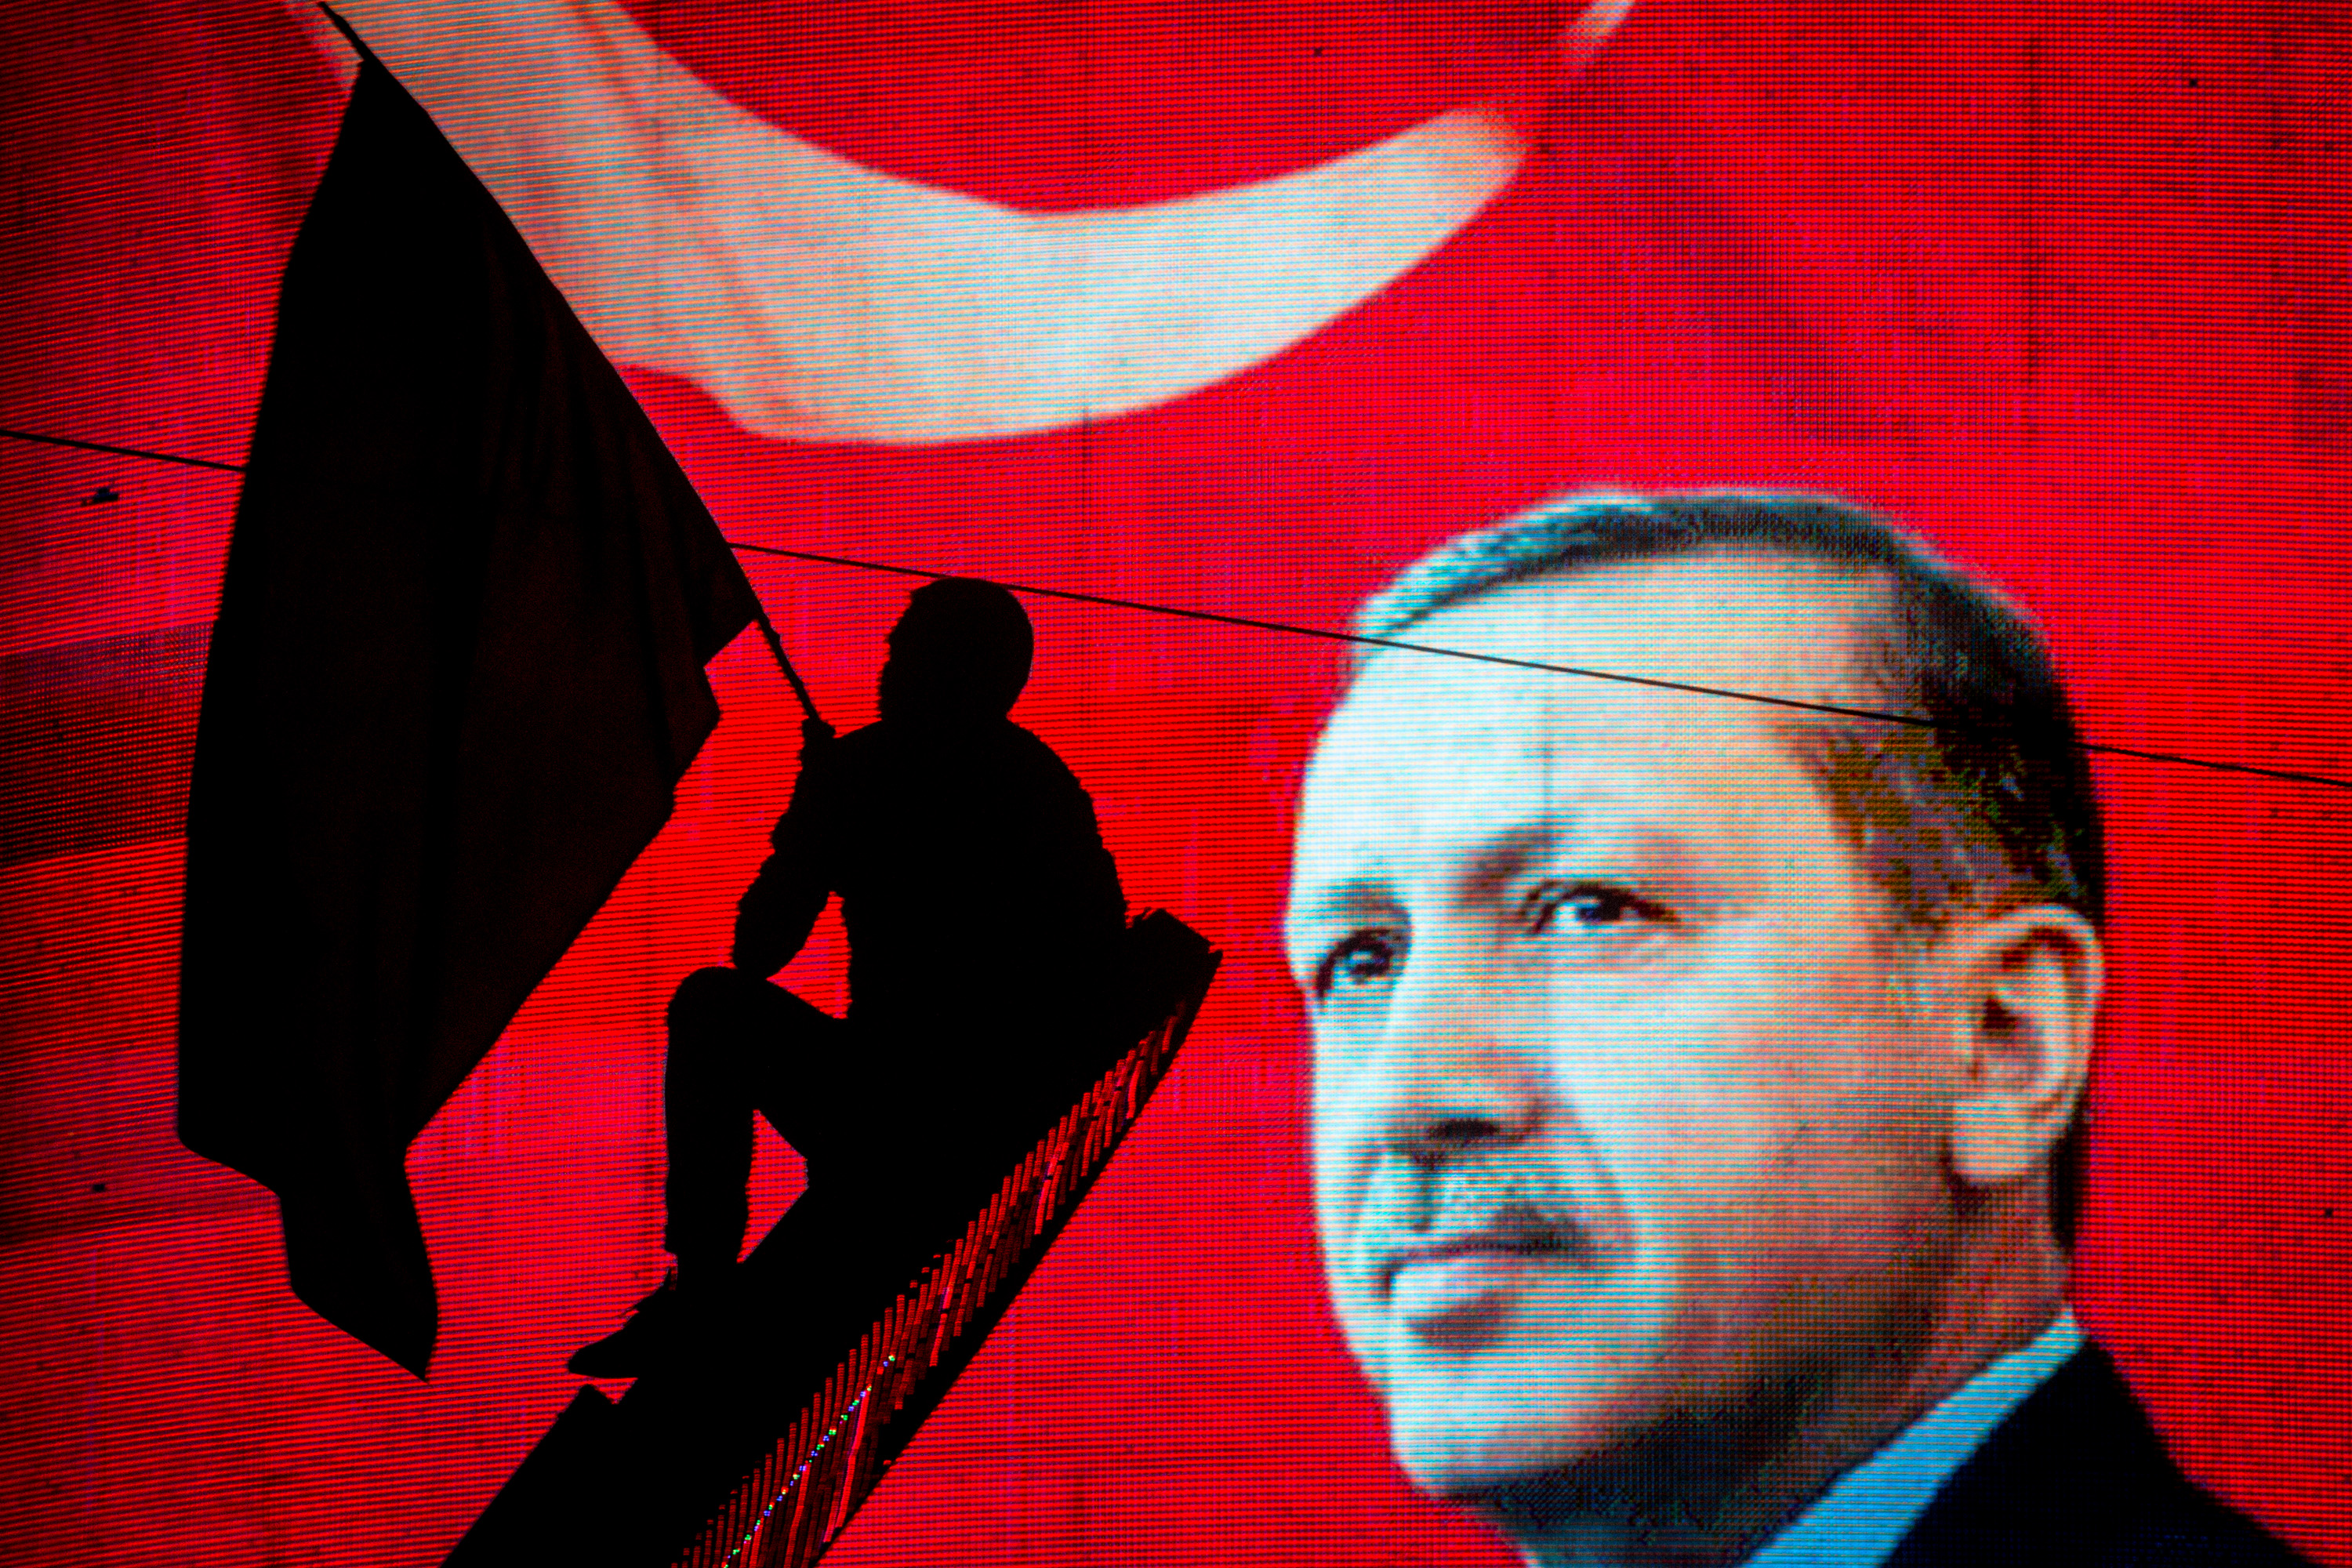 A supporter of Turkish President Recep Tayyip Erdogan waves a flag against an electronic billboard during a rally in Kizilay Square on July 18, 2016 in Ankara, Turkey.